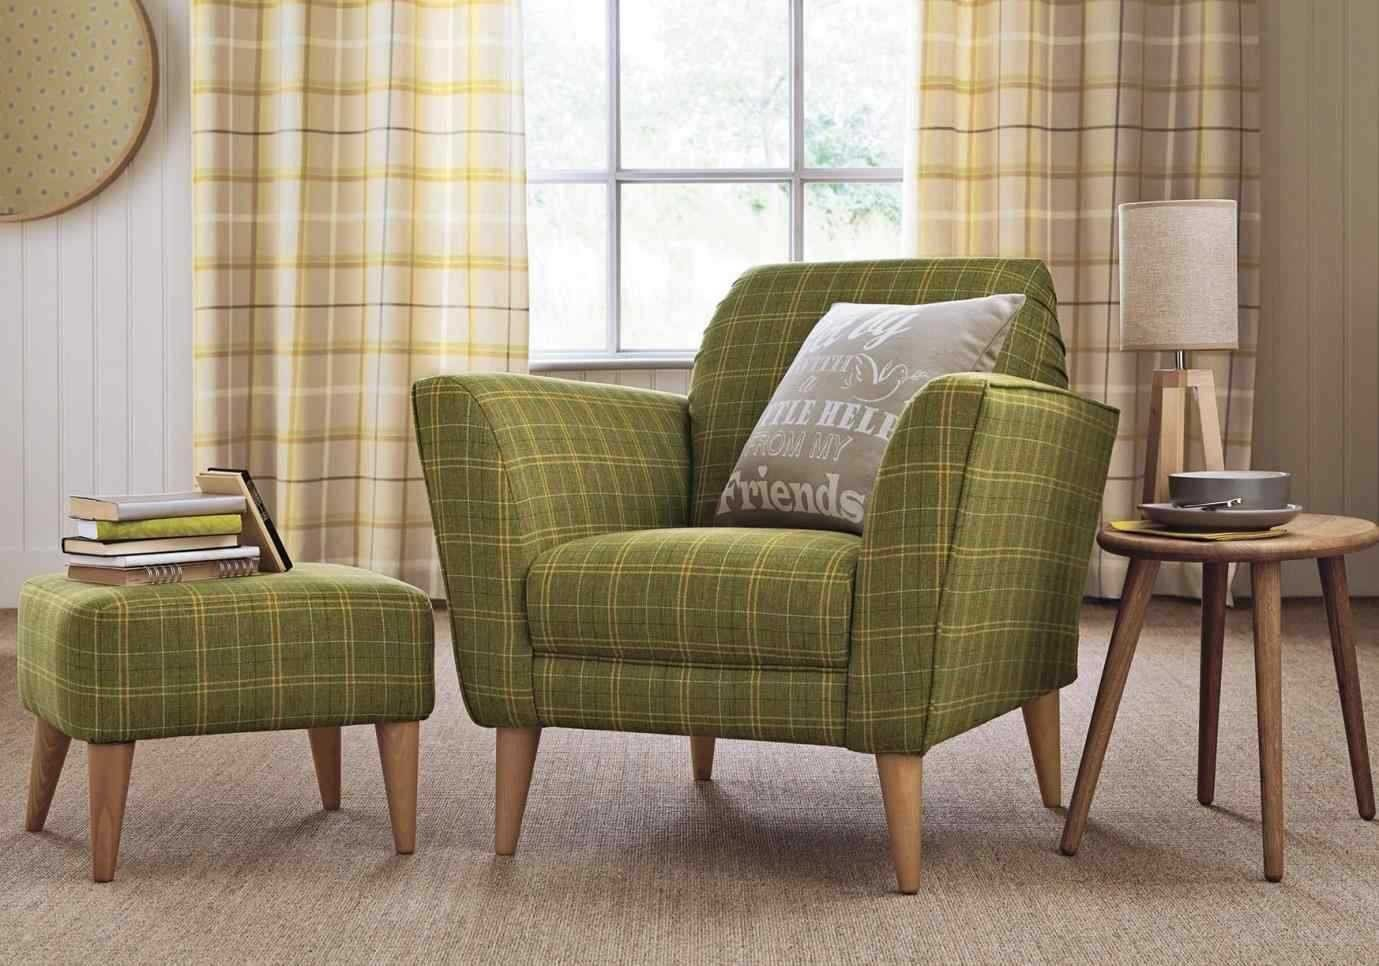 Most Comfortable Living Room Chair Most fortable Living Room Chair Inspirations and Most